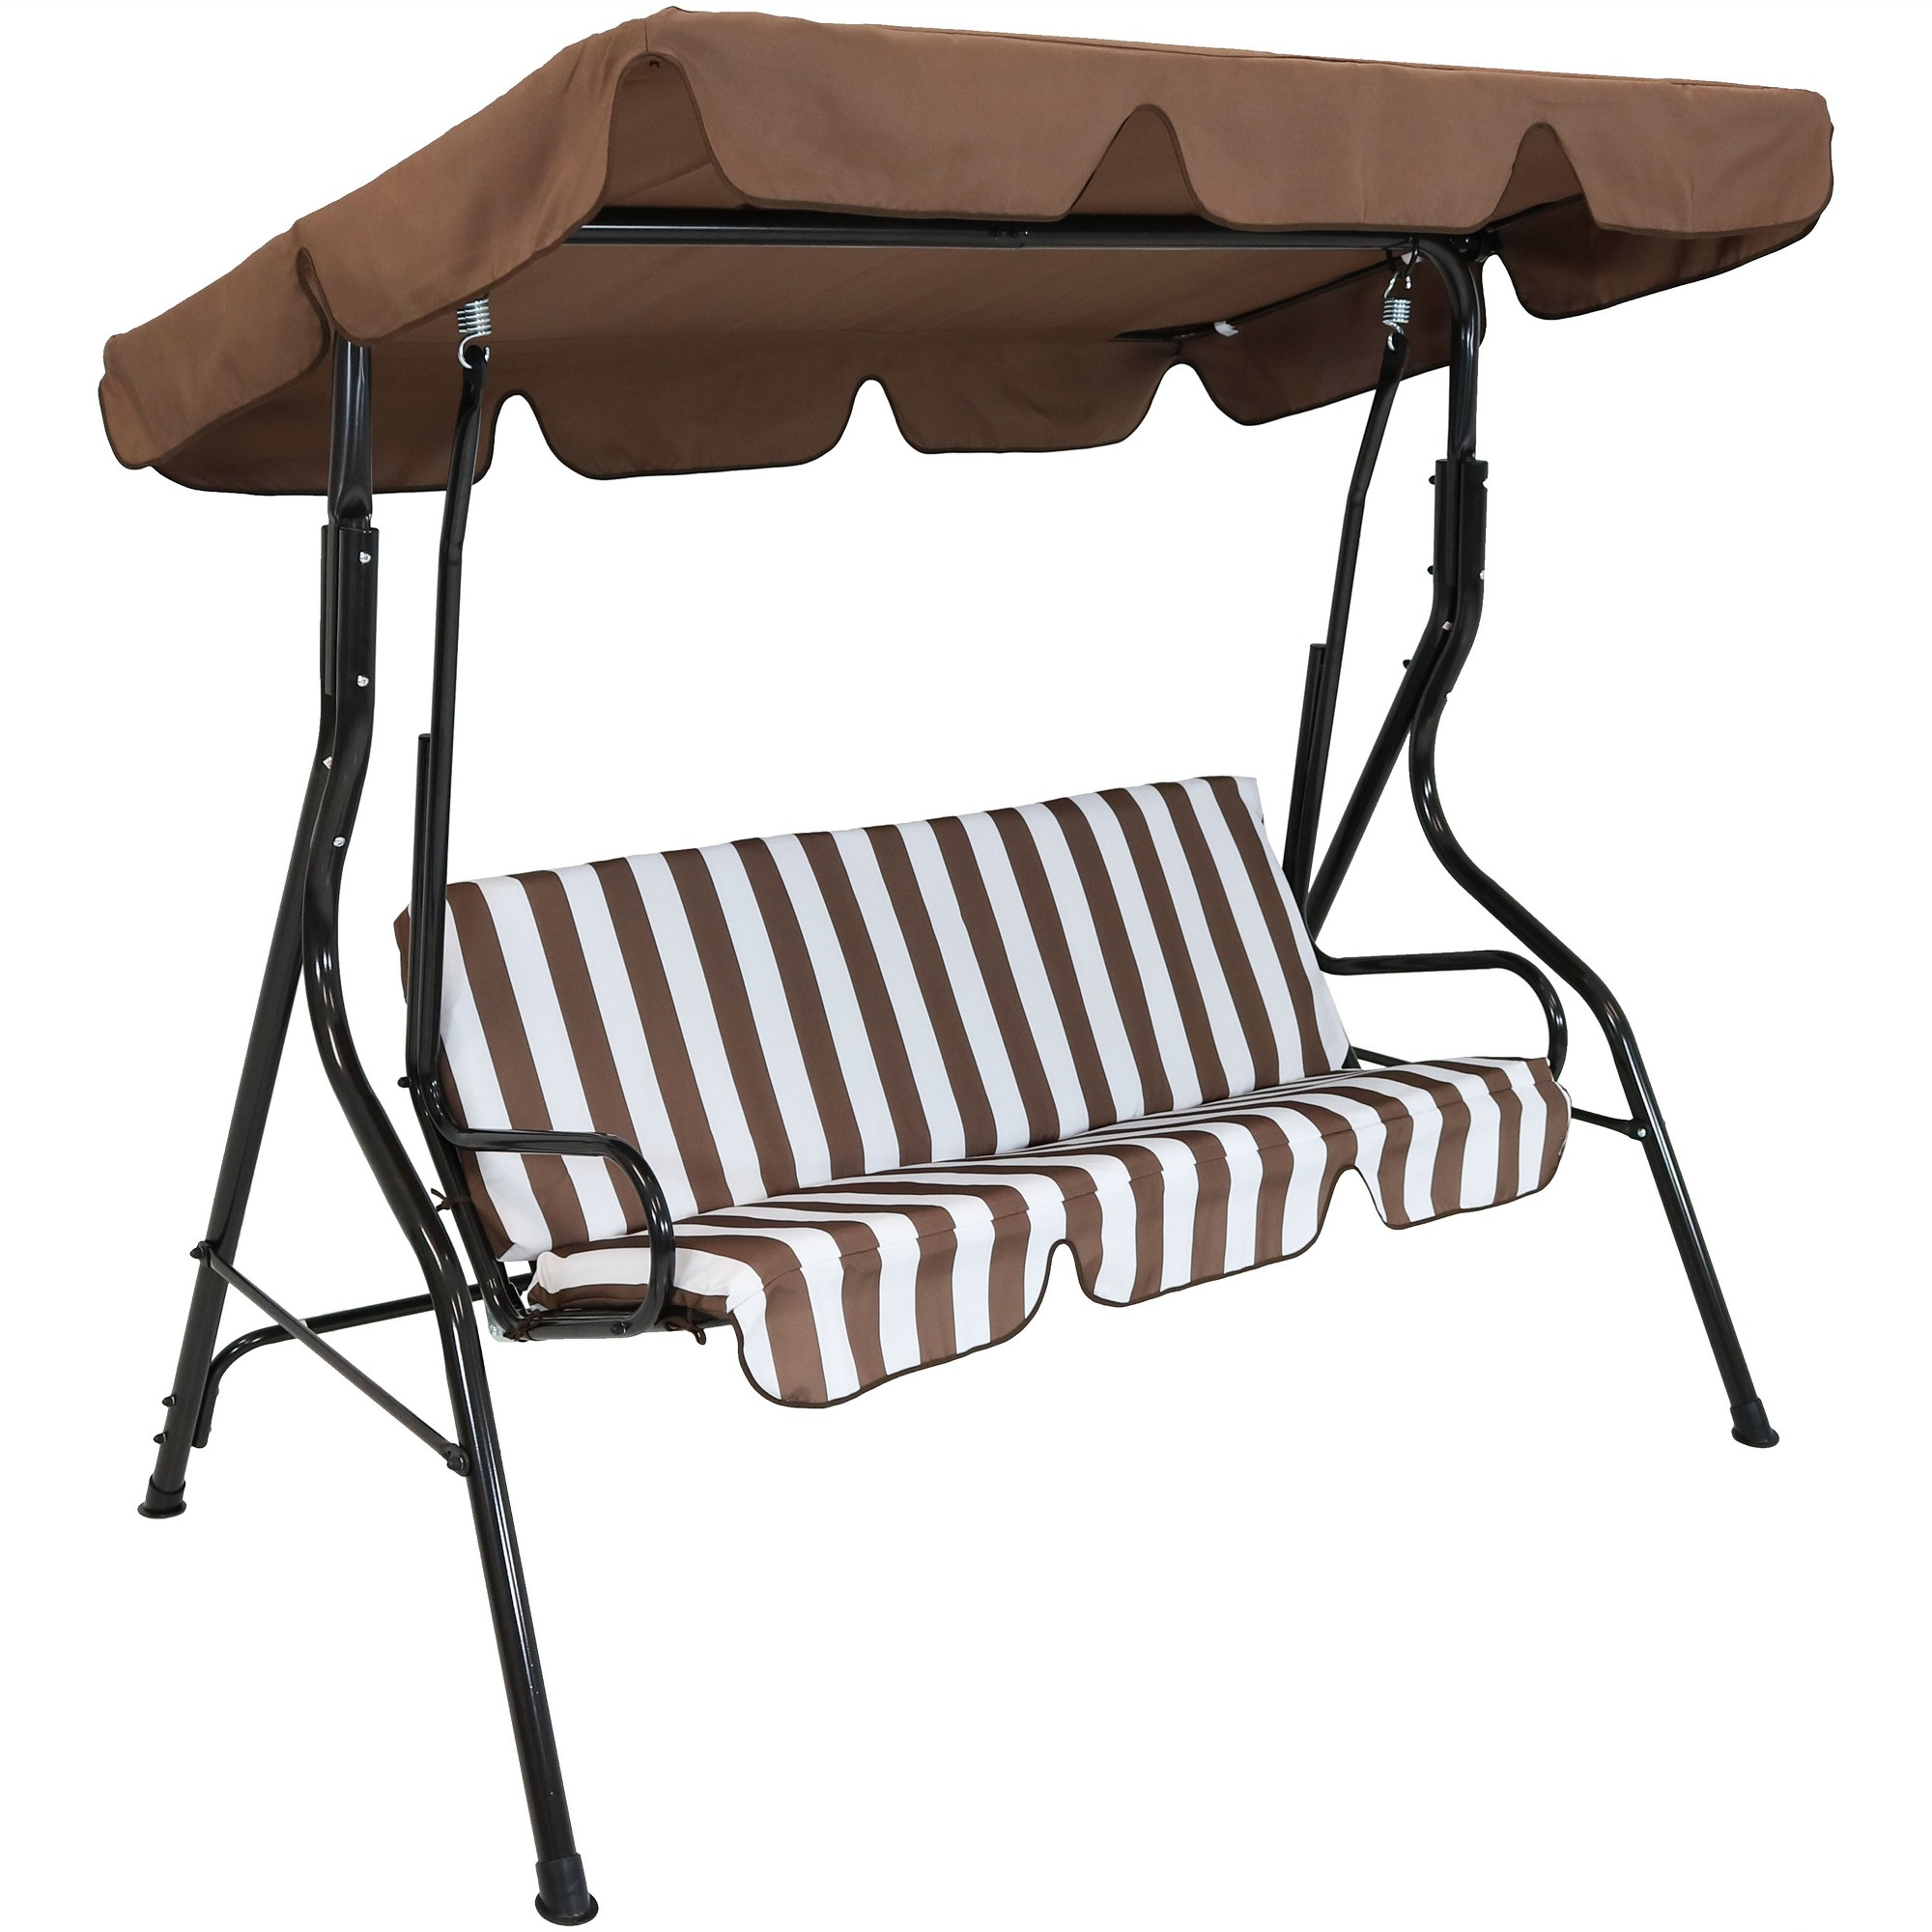 2 Person Steel Frame Porch Swing With Adjustable Canopy For 2 Person Black Wood Outdoor Swings (View 4 of 25)